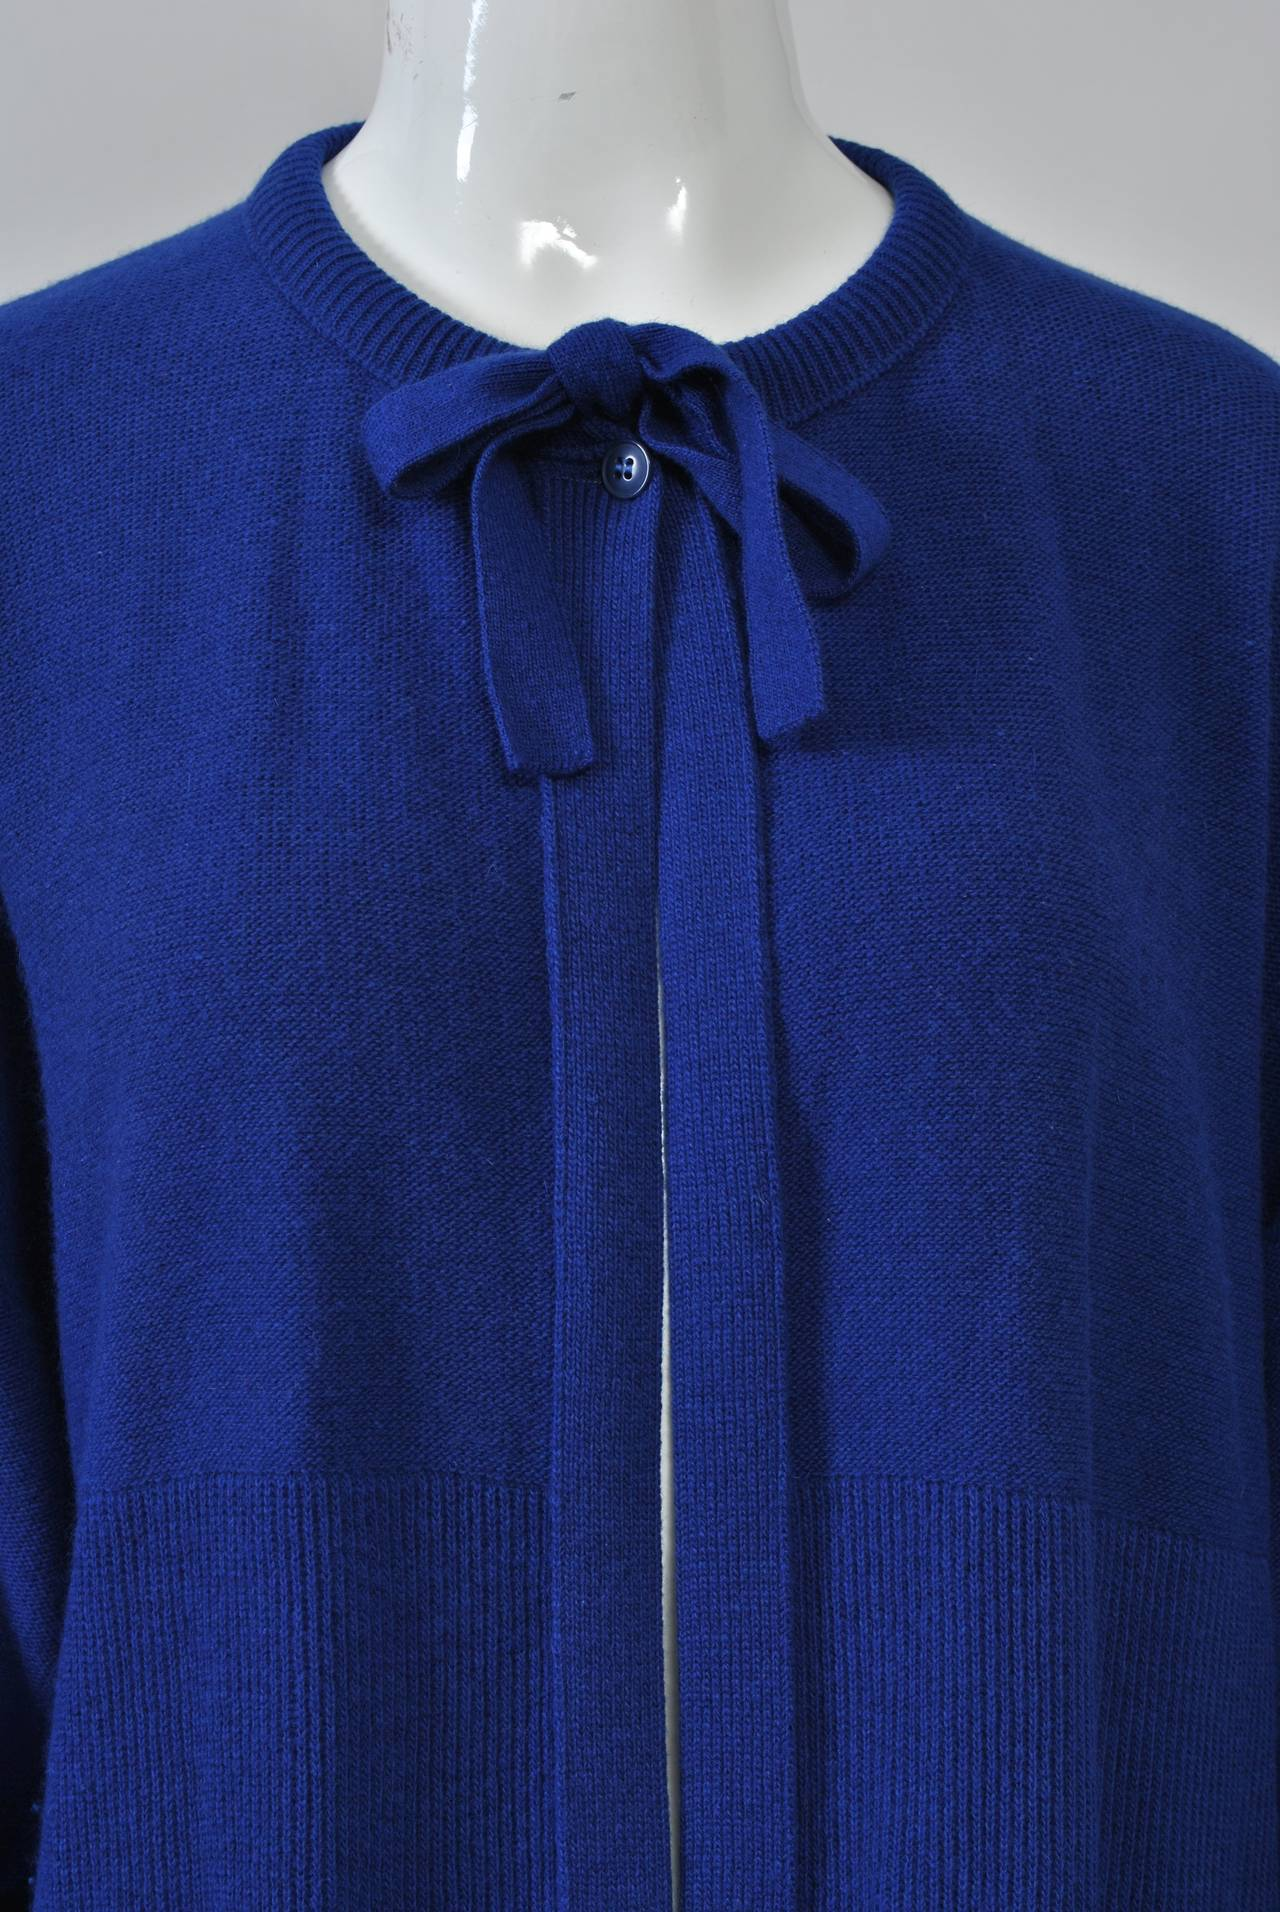 Sonia Rykiel Blue Sweater Coat In Excellent Condition For Sale In Alford, MA